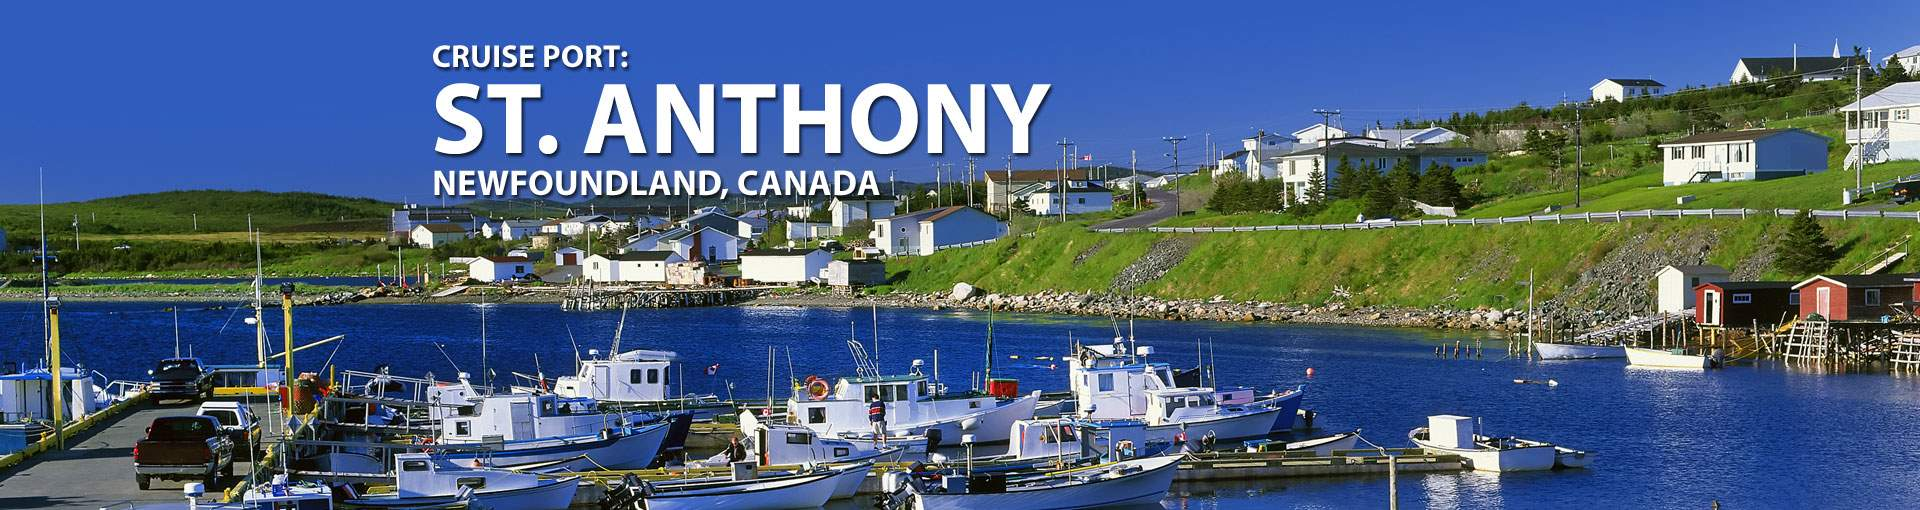 Cruises to St. Anthony, Newfoundland